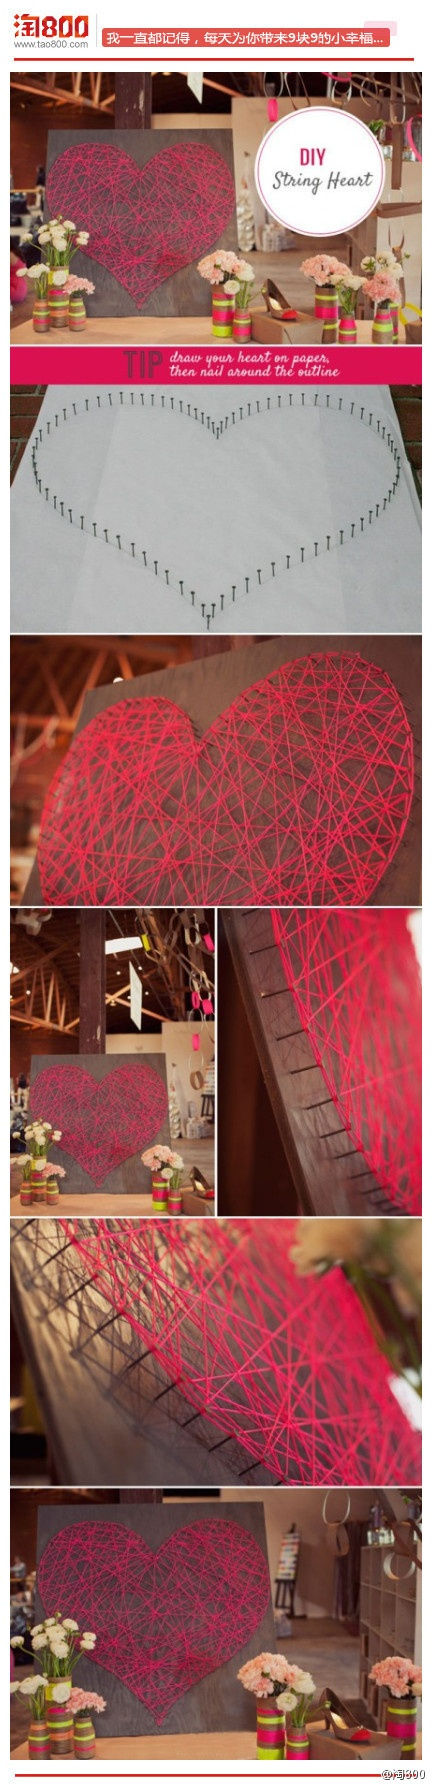 DIY String Heart